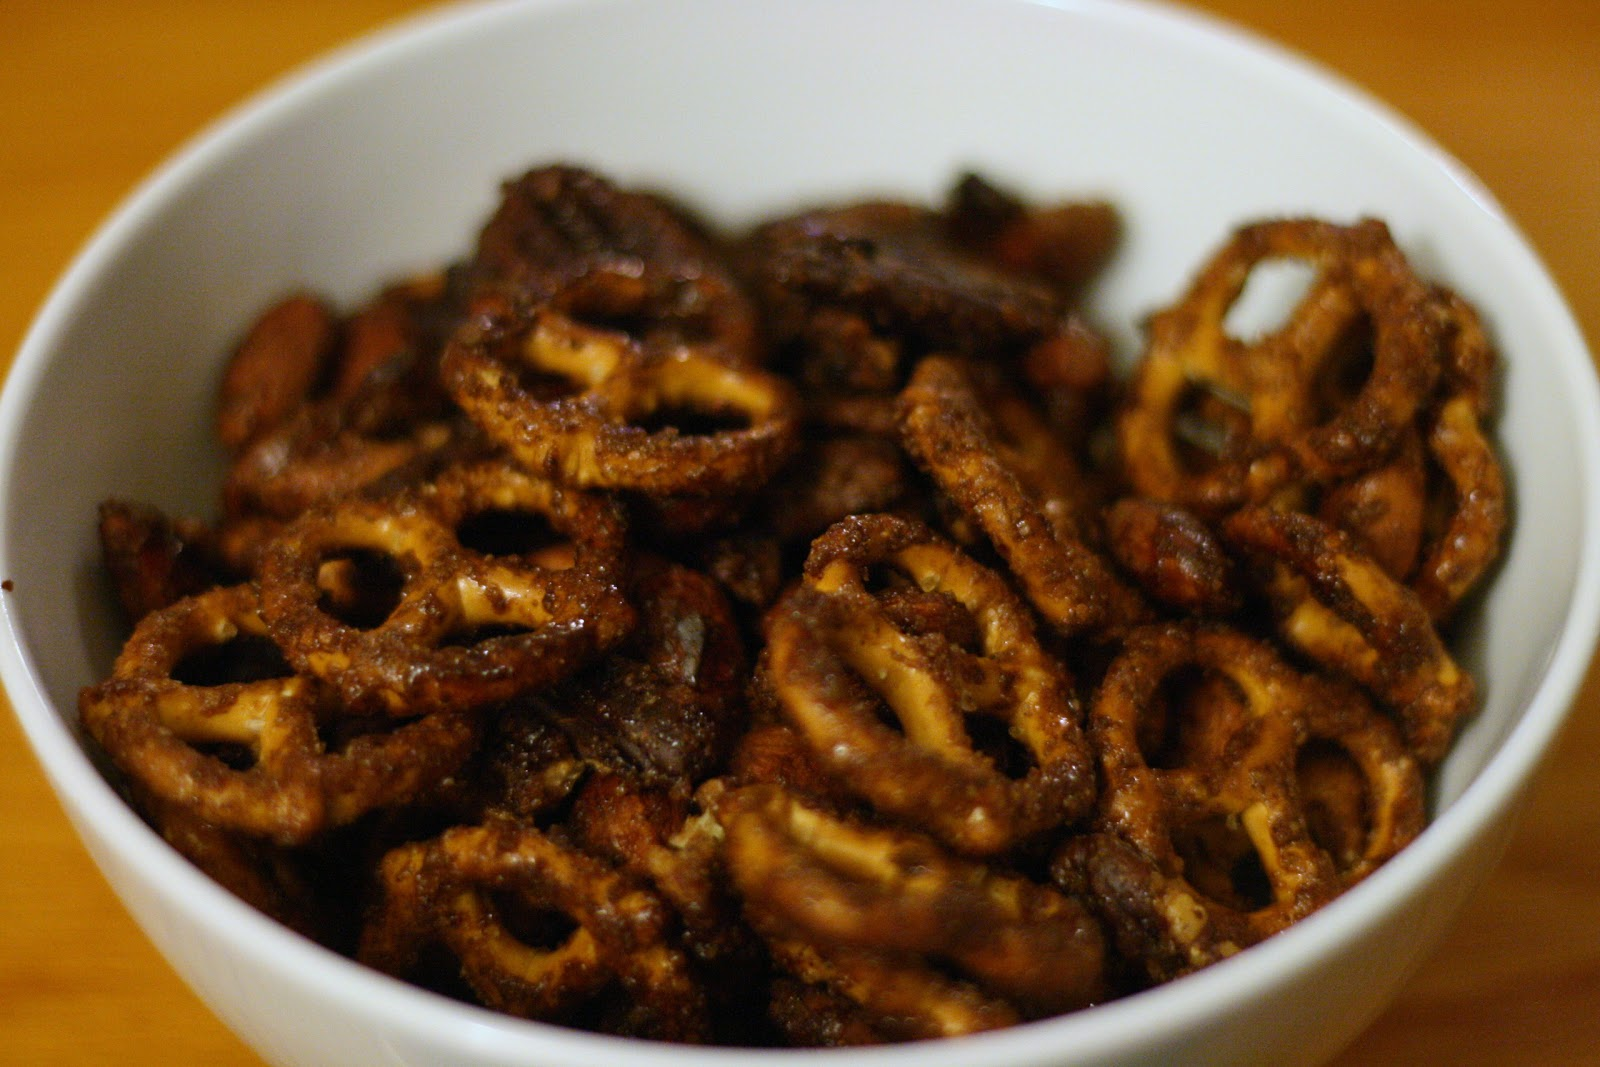 Laine's Recipe Box: Spiced Glazed Nuts and Pretzels Mix